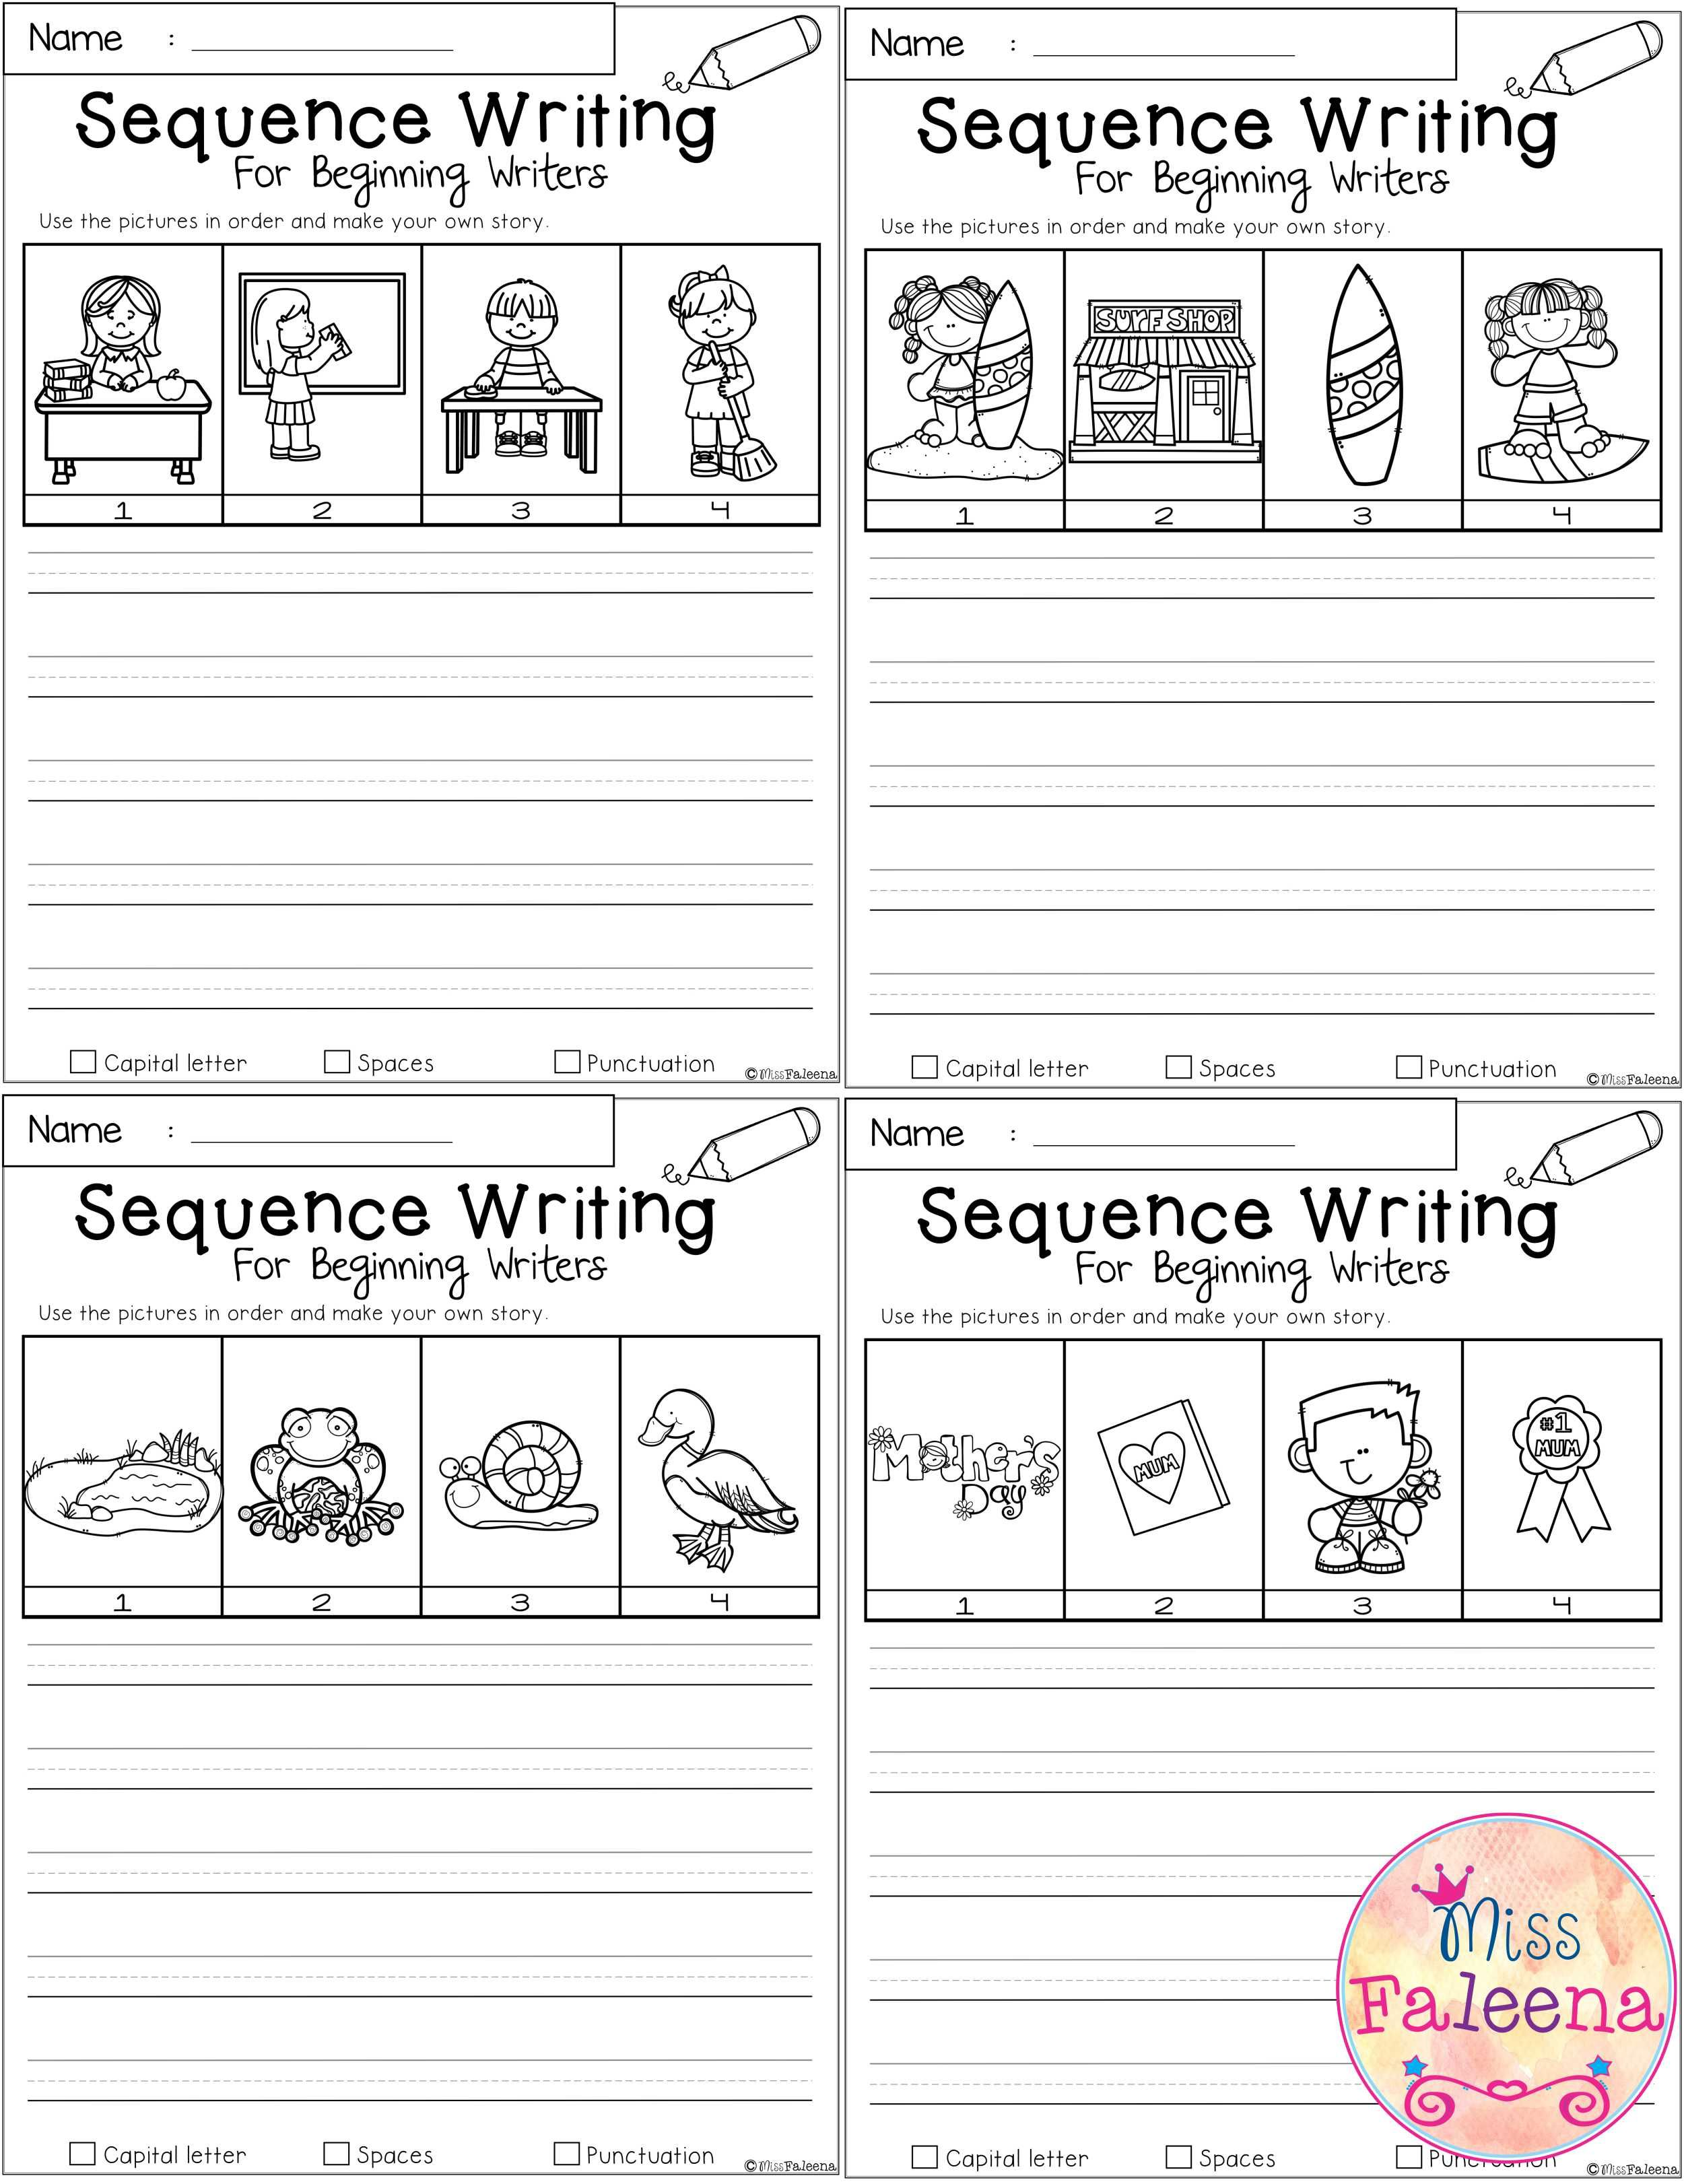 May Sequence Writing For Beginning Writers